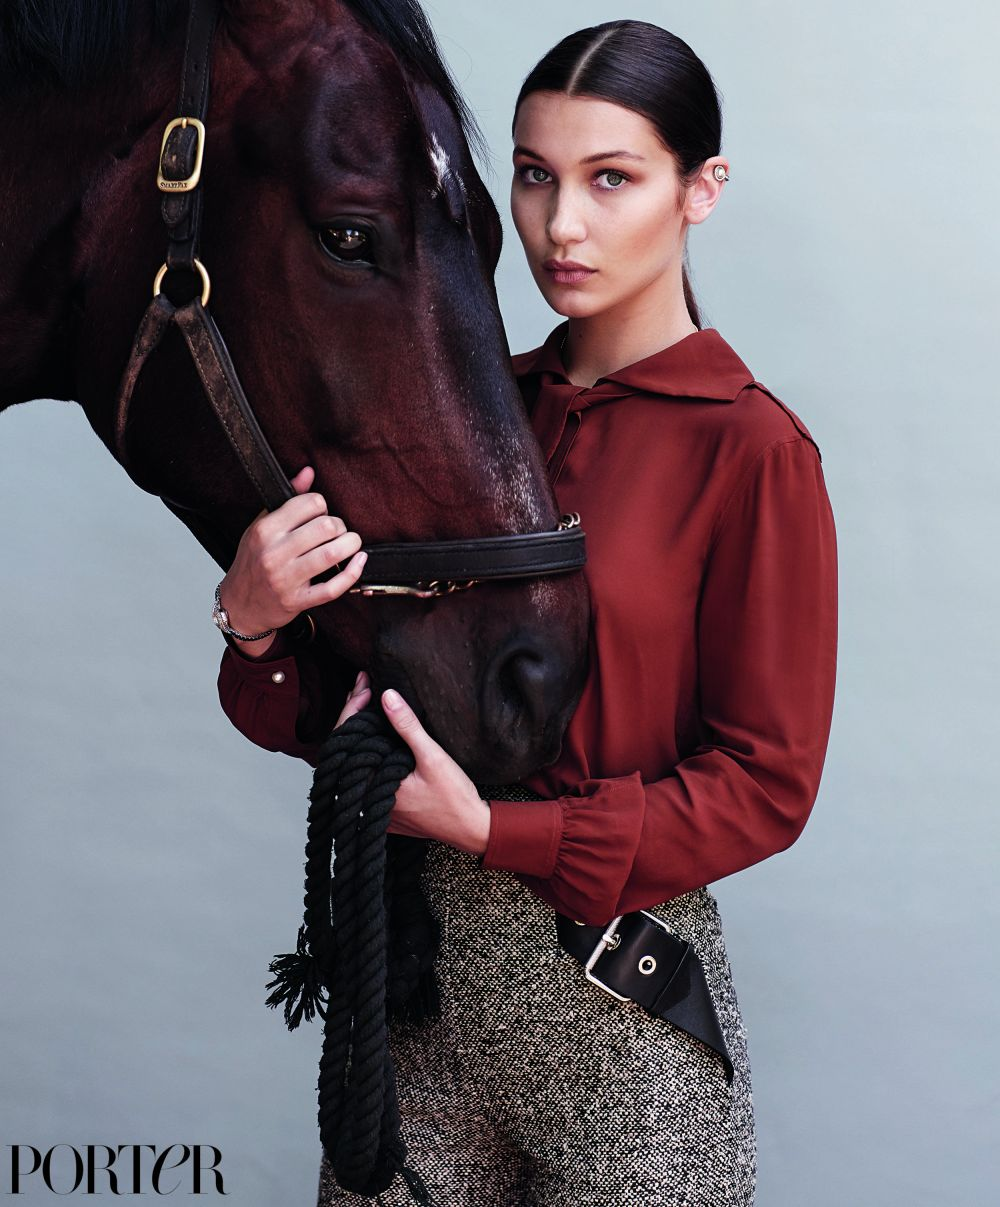 BELLA HADID wears-blouse-by-philosophy-di-lorenzo-serafini-pants-and-earrings-by-balenciaga-photographed-by-sebastian-faena-for-porter 01 190516